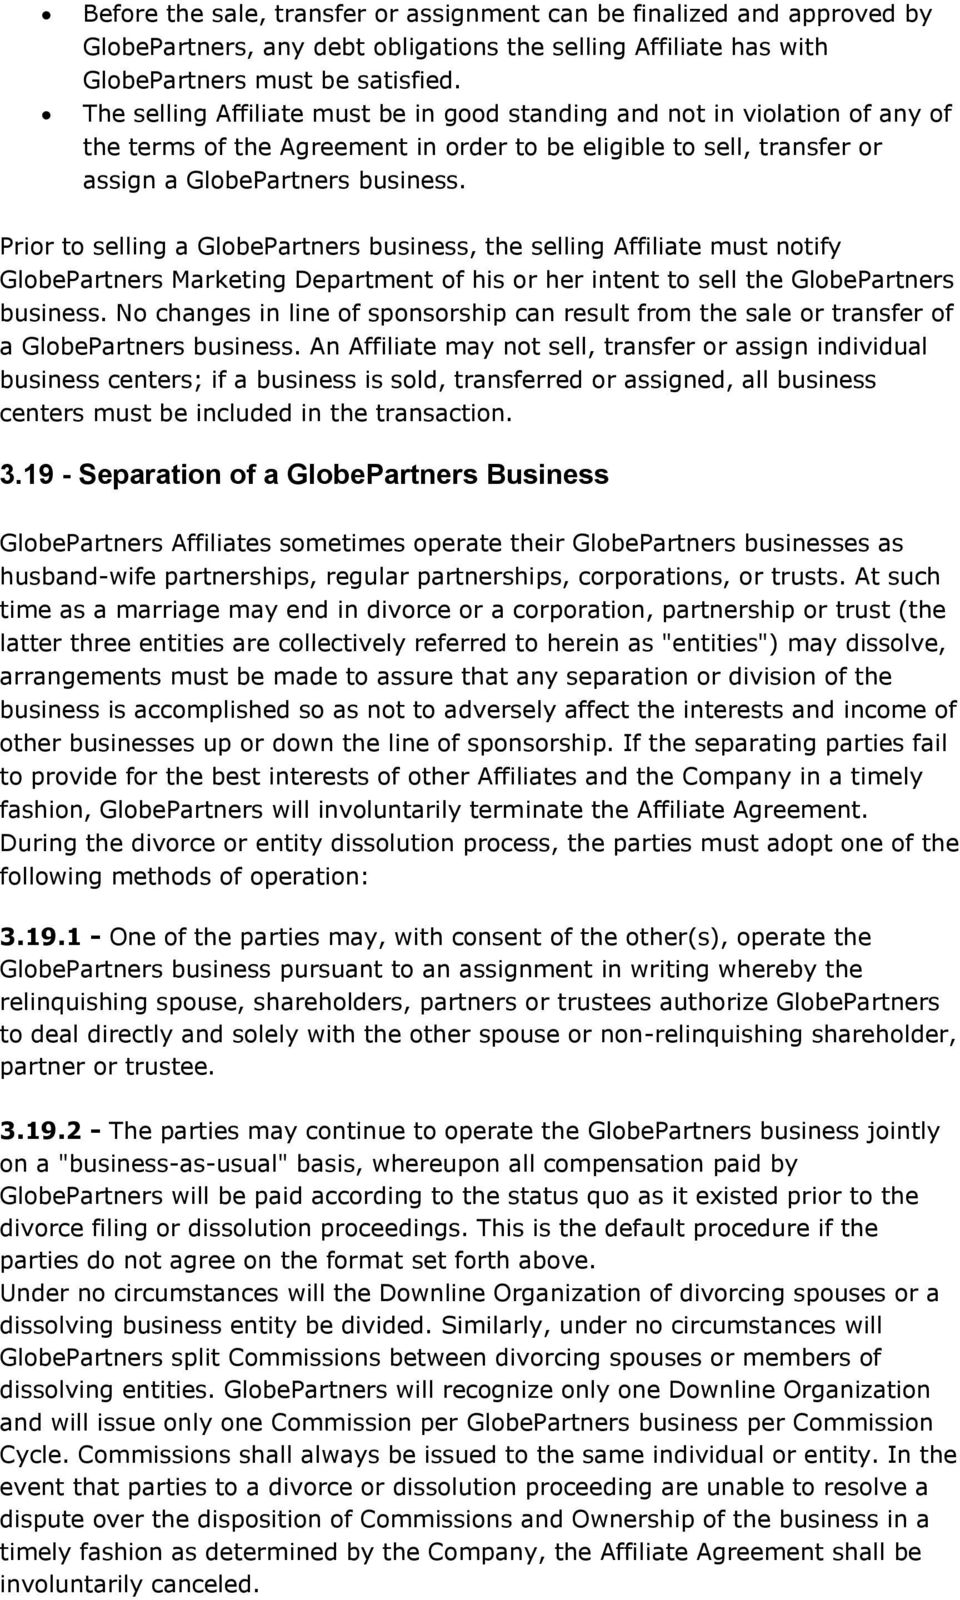 Prior to selling a GlobePartners business, the selling Affiliate must notify GlobePartners Marketing Department of his or her intent to sell the GlobePartners business.